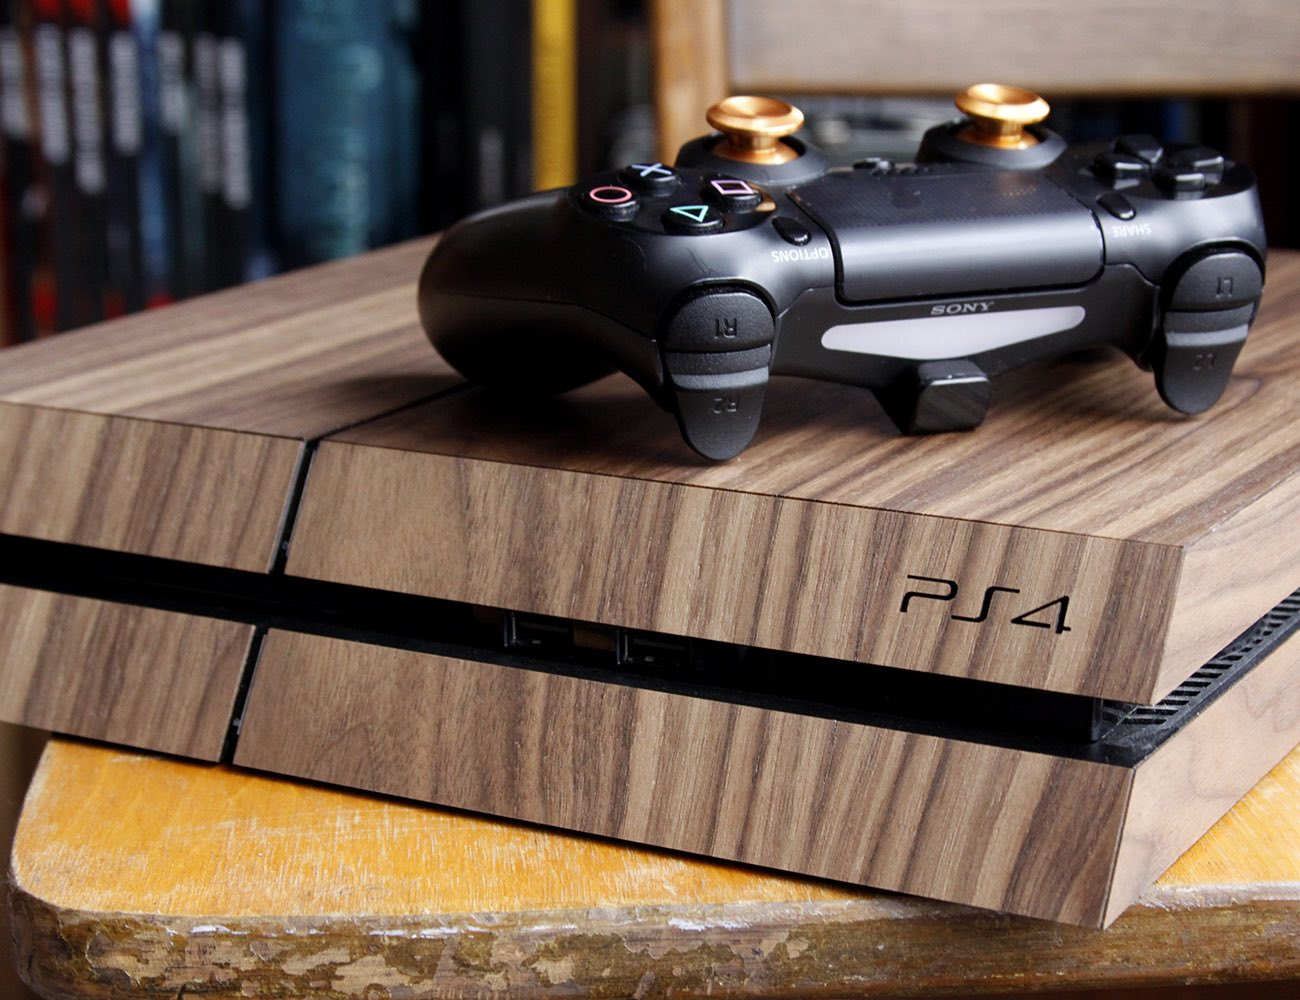 10 Must-have gaming accessories that will help you level up - Real Wood Cover 01